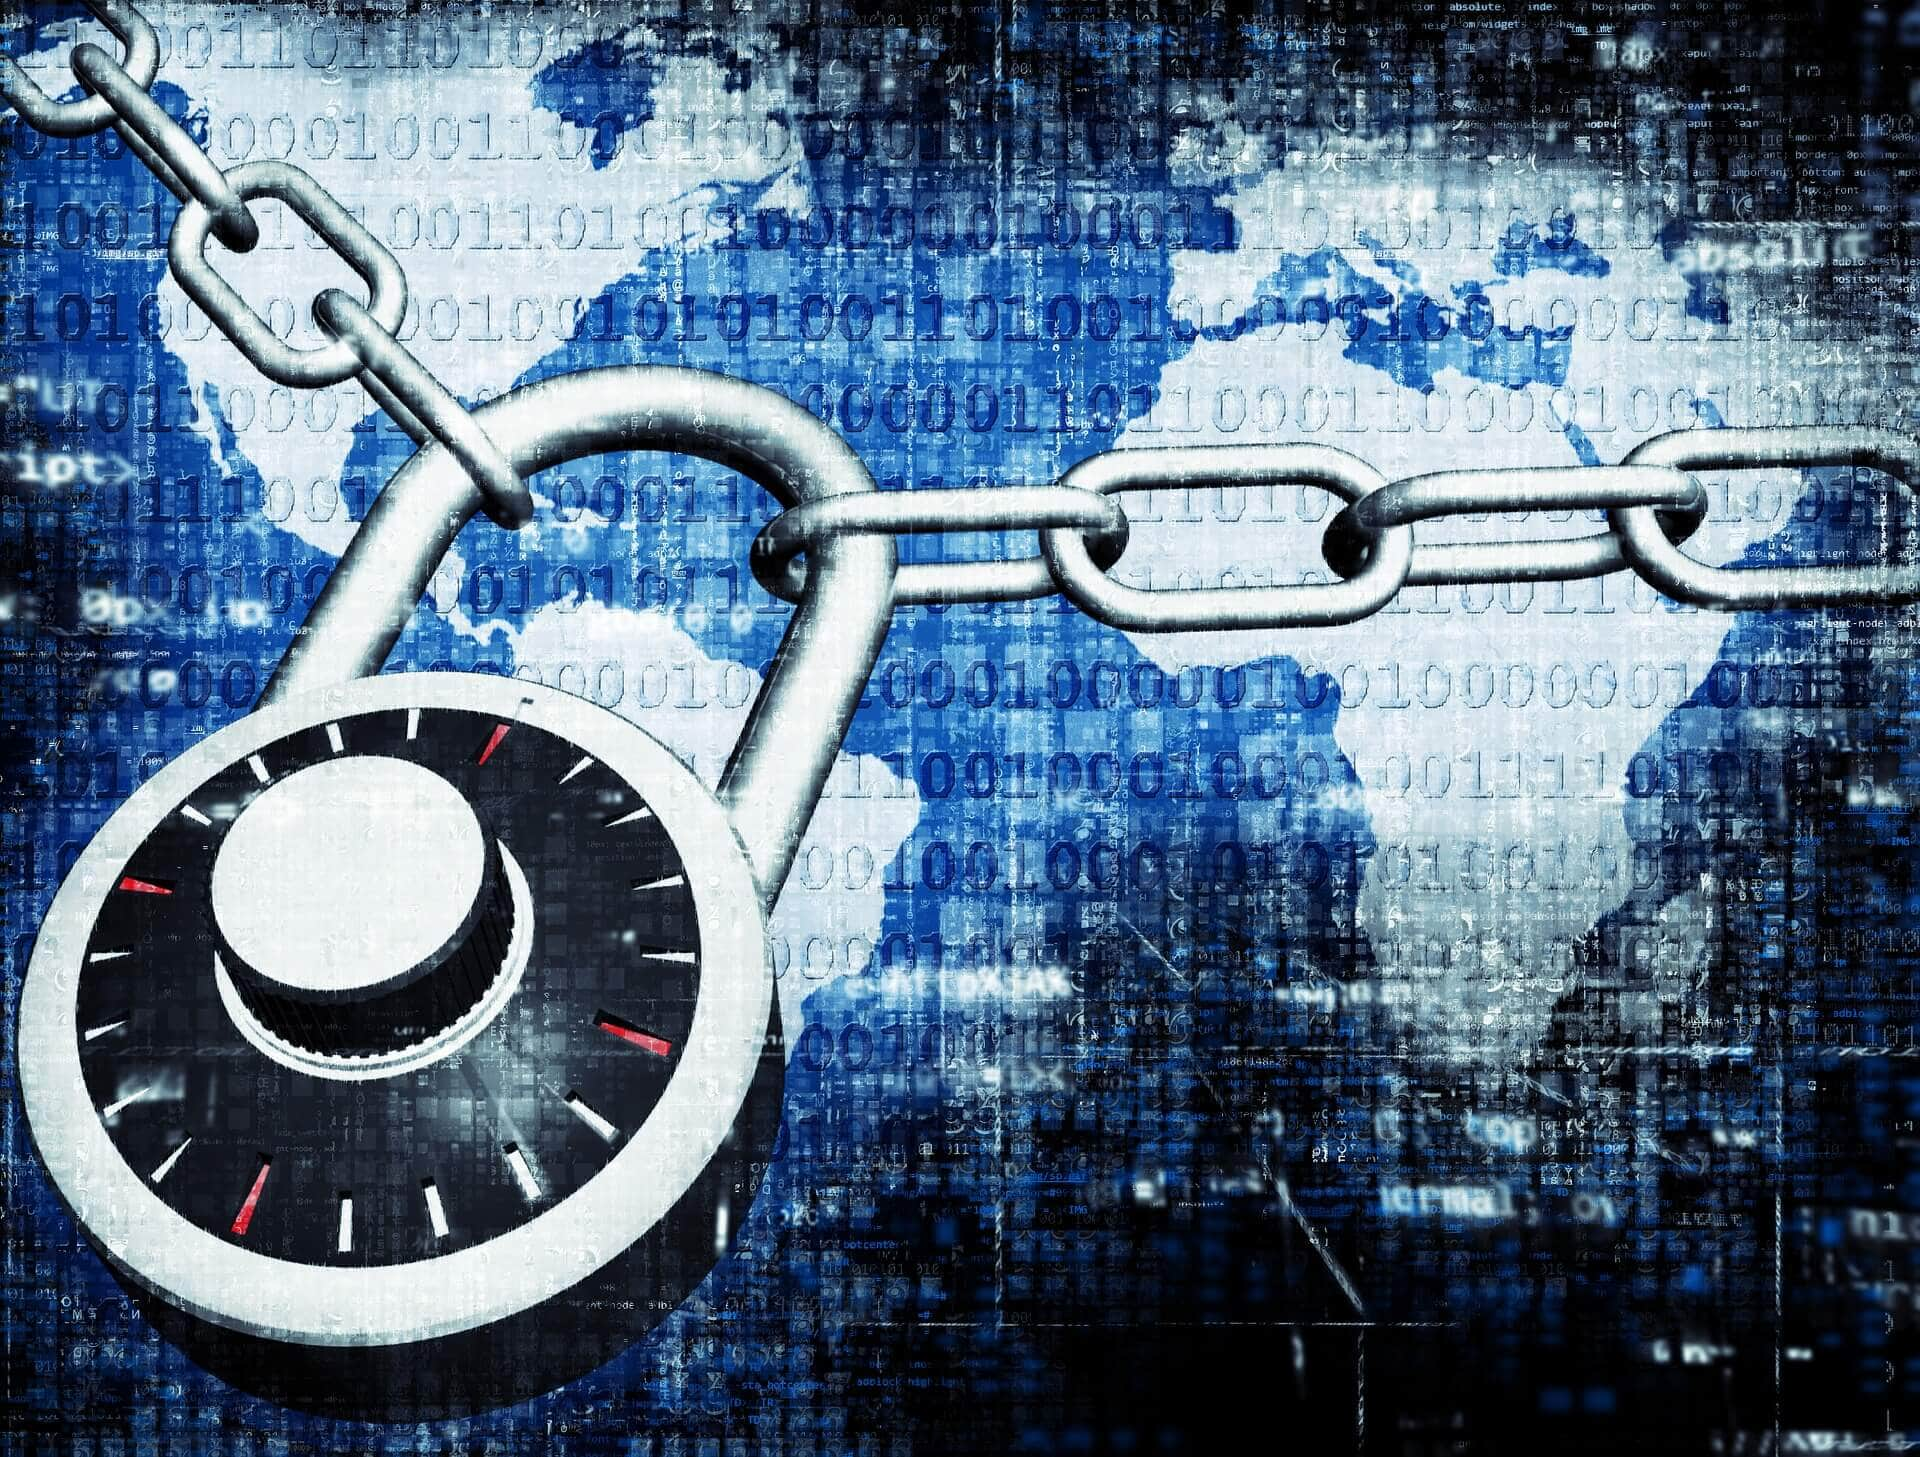 content/en-ae/images/repository/isc/2020/how-to-protect-your-internet-privacy.jpg